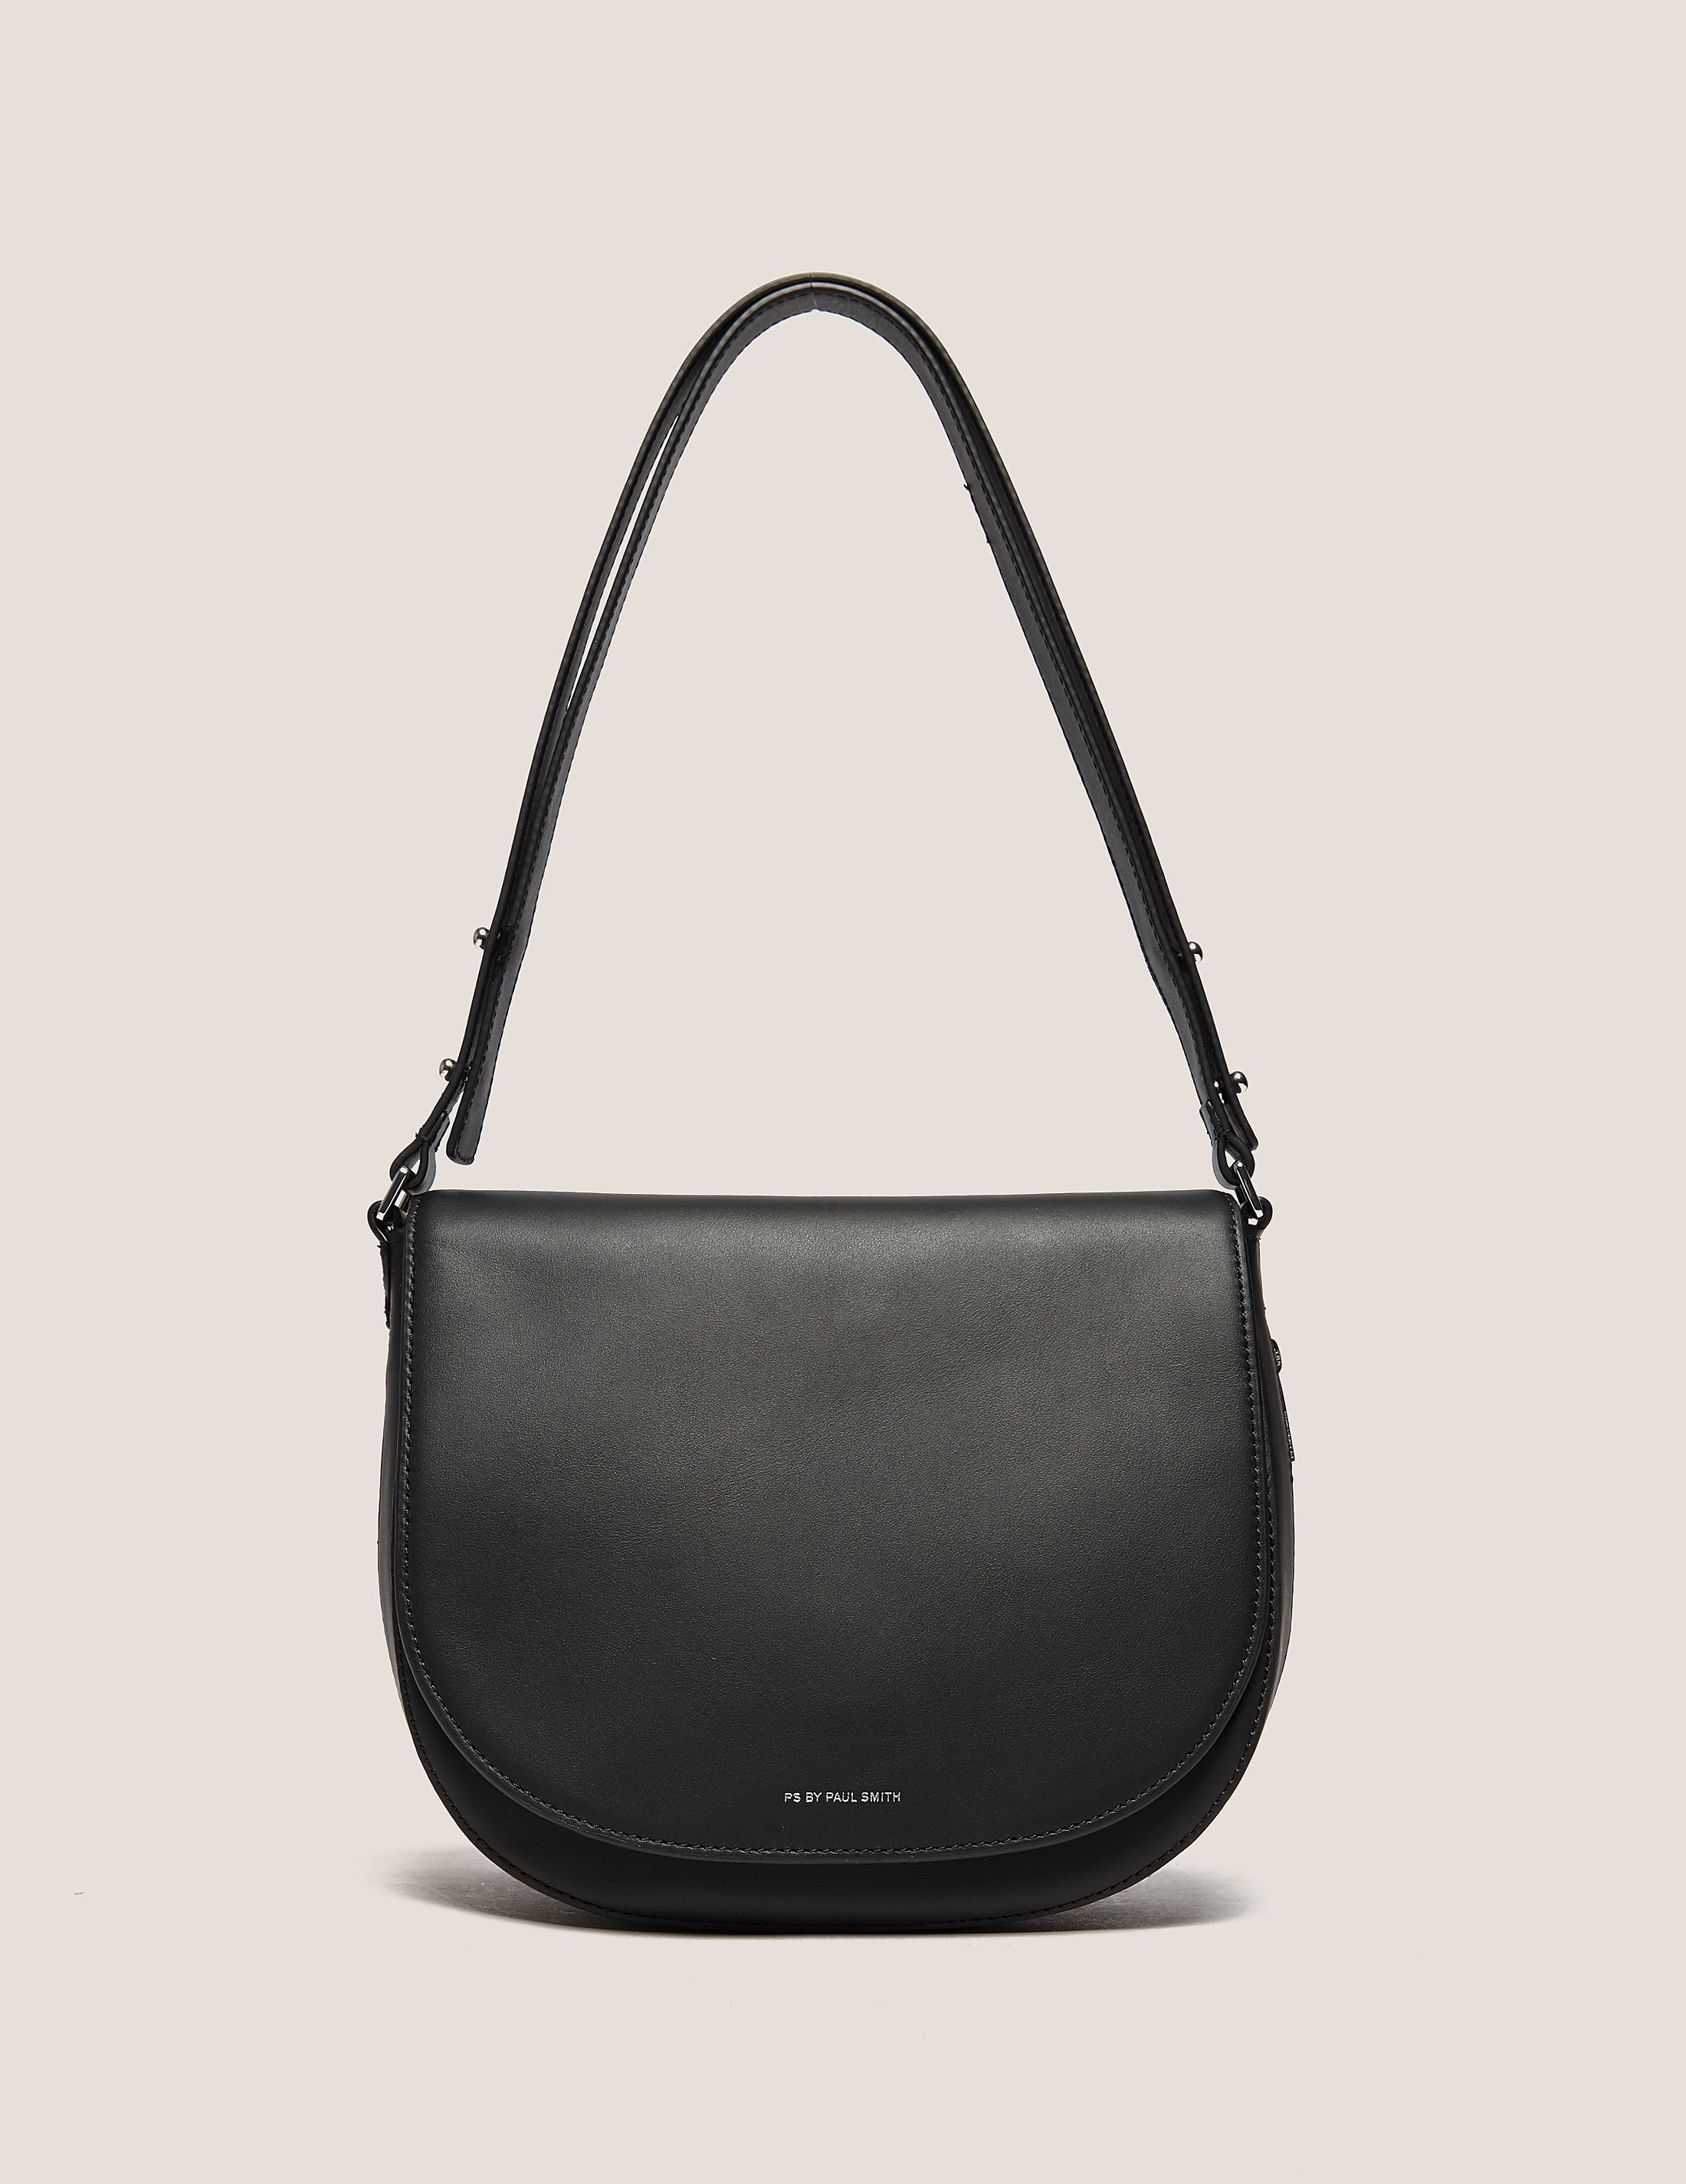 Paul Smith Saddle Bag